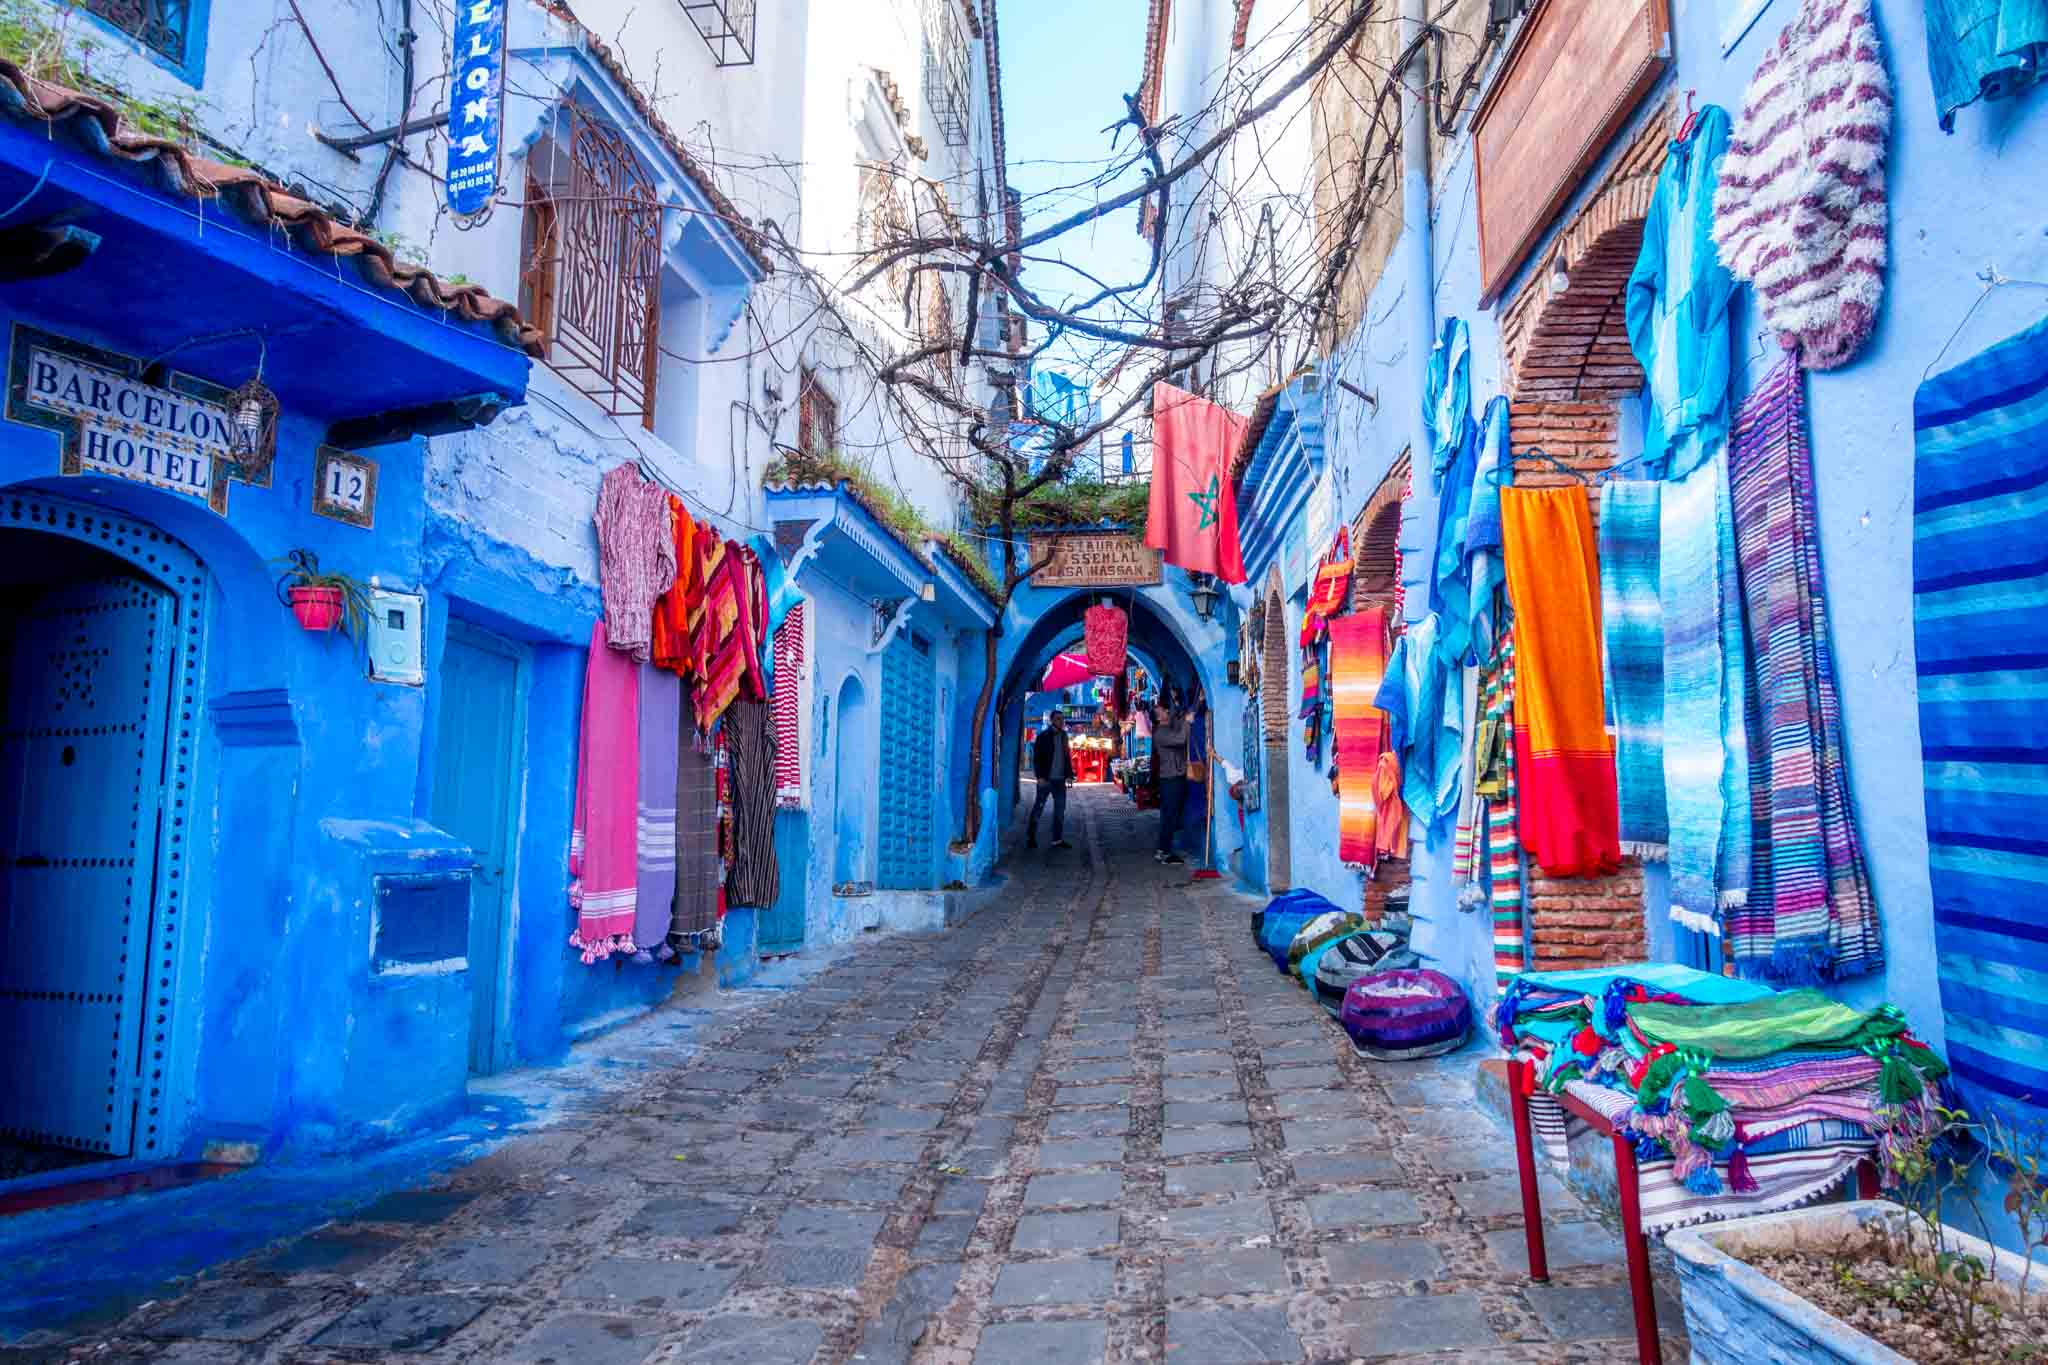 Chefchaouen in northern Morocco is one of the highlights of a two week Morocco itinerary